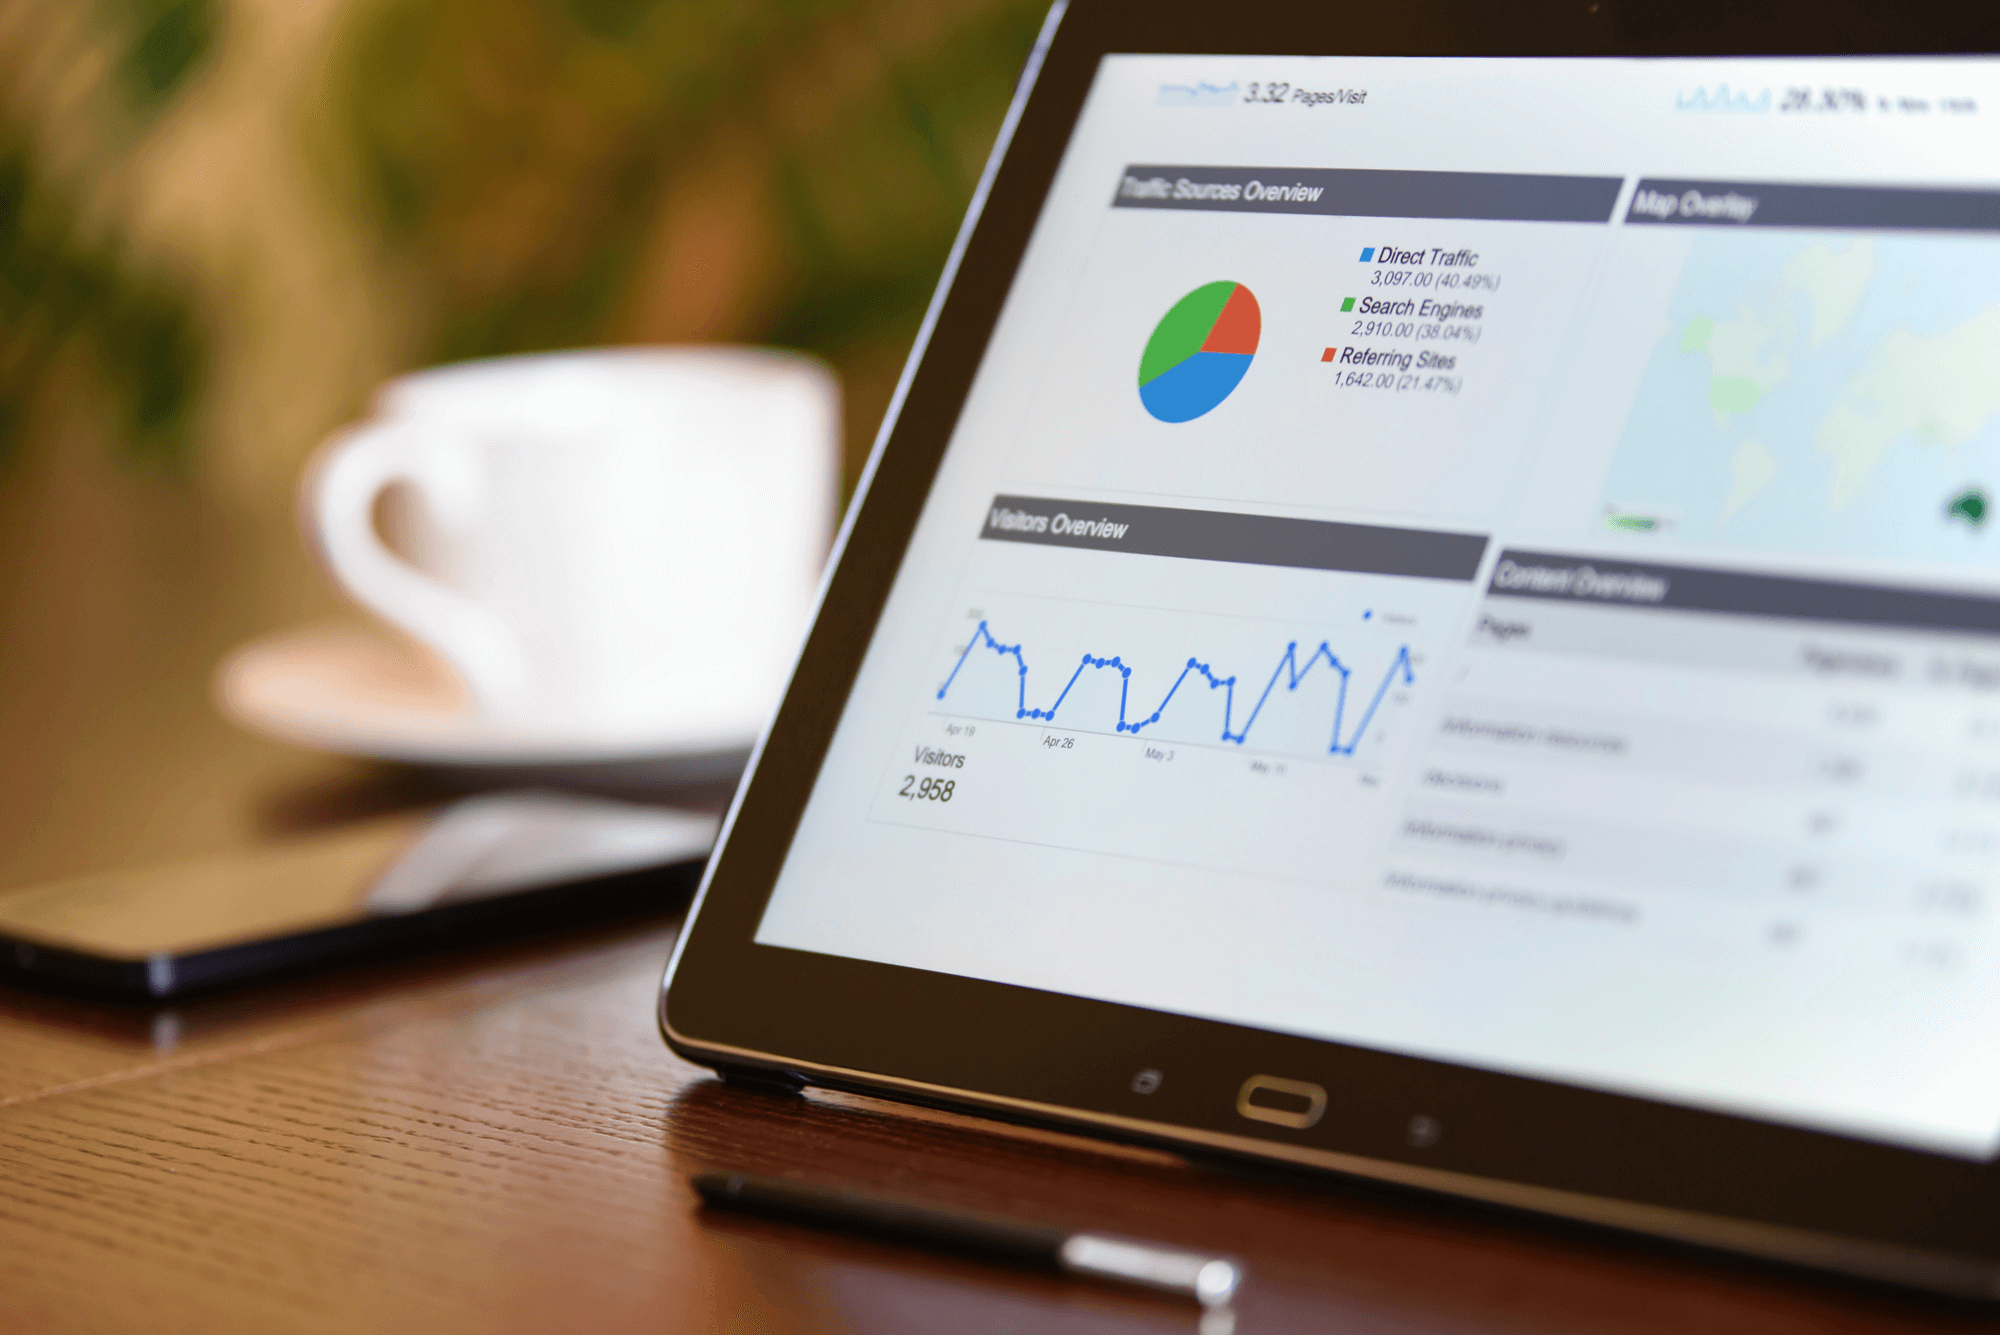 Data Analyst | Hiring | The 7 biggest trends for Data Analysts